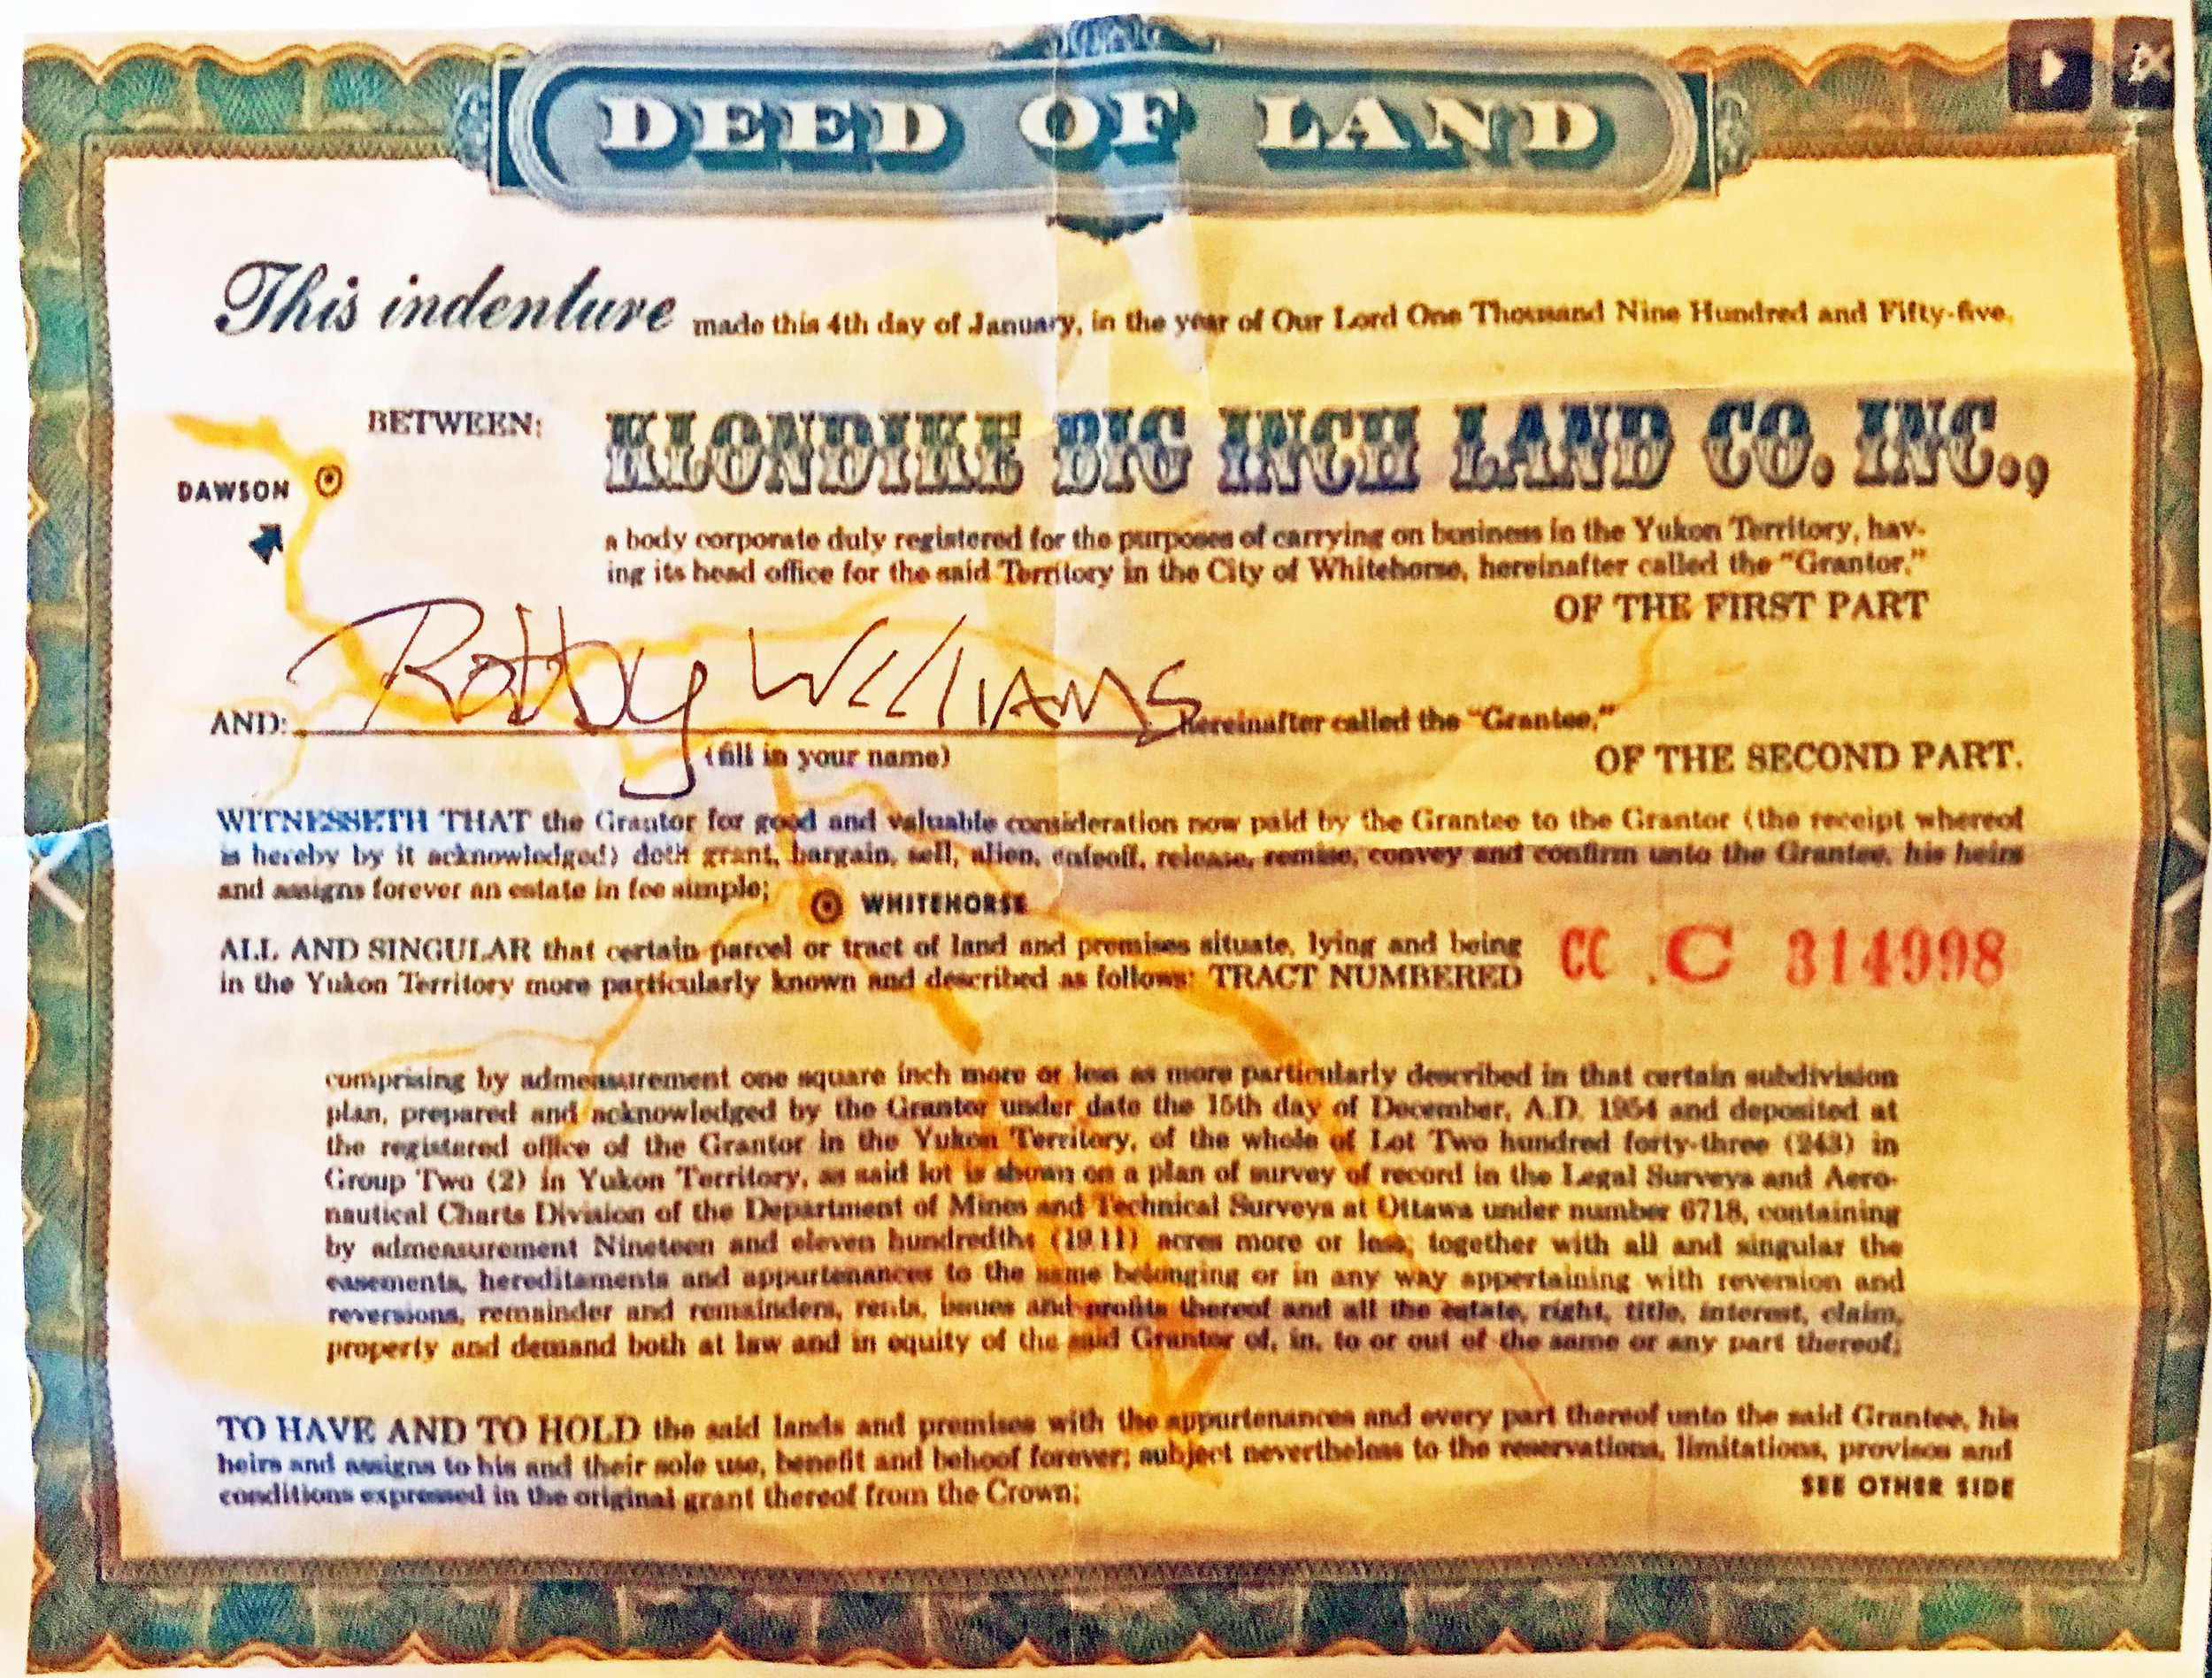 Rob Williams' Klondike Deed, 1957